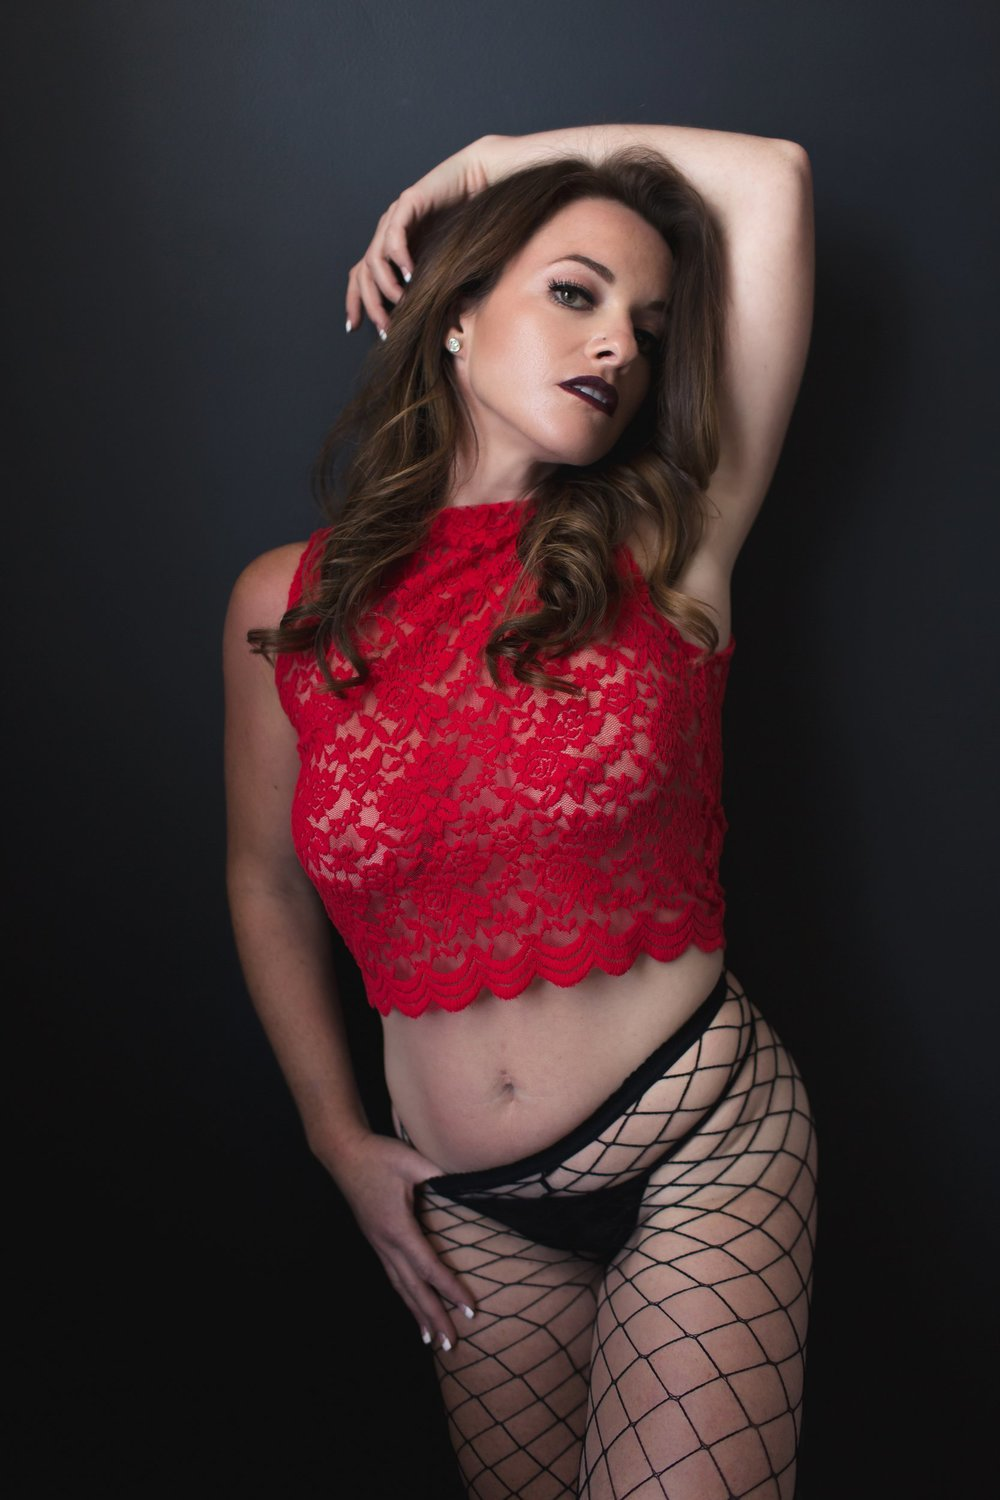 Sensual woman in red lace top and fishnet stockings